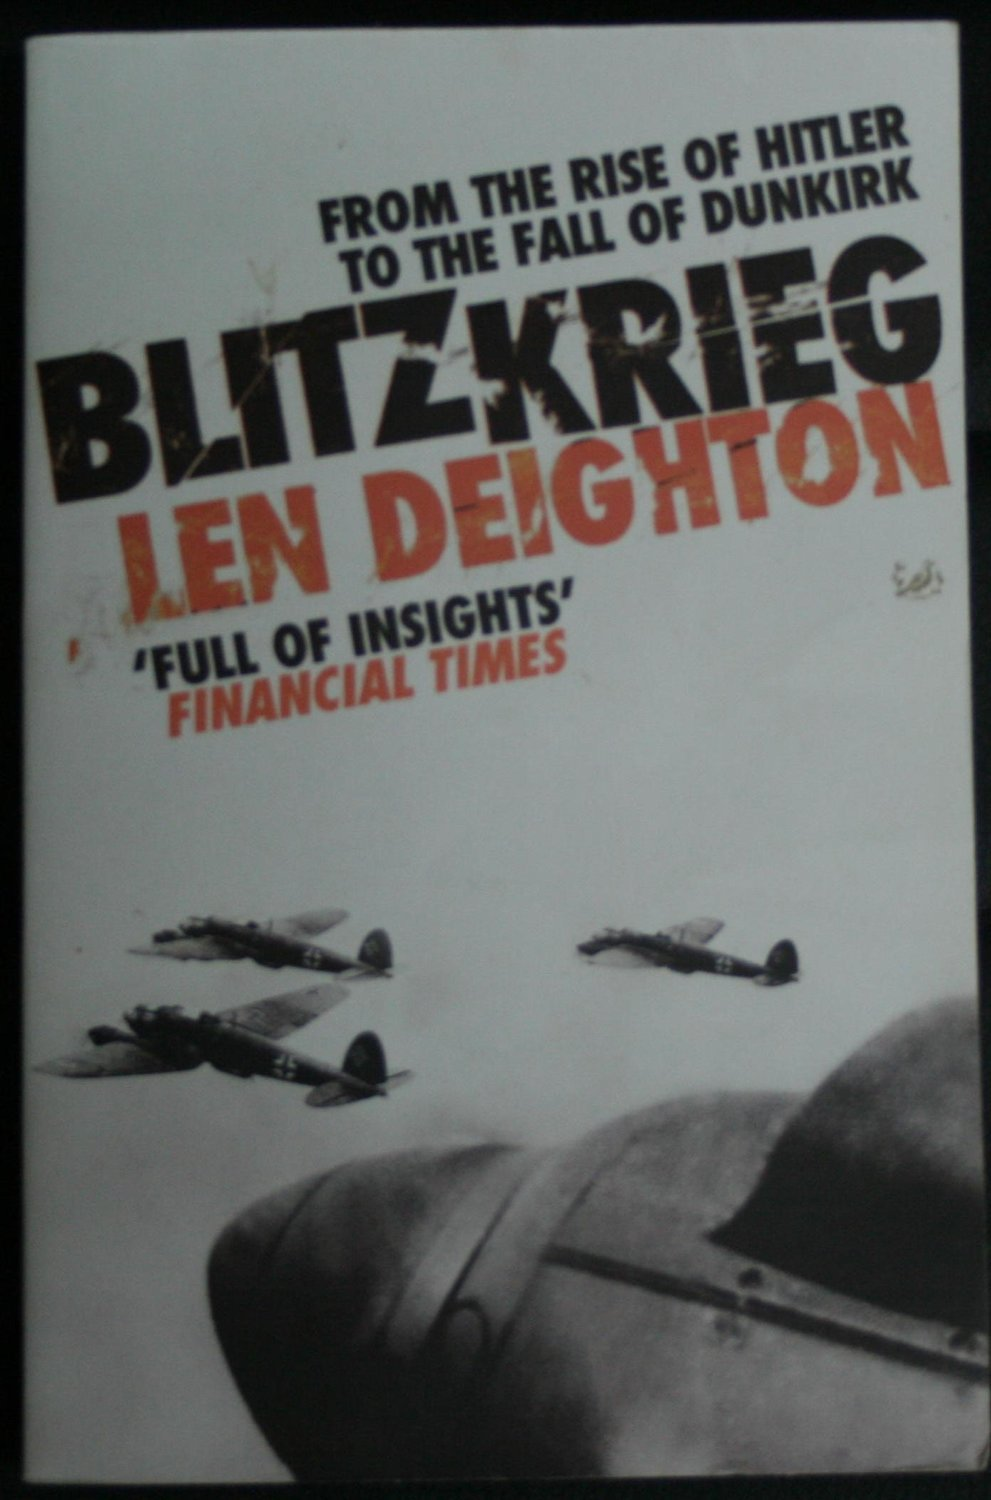 Blitzkreig: From the Rise of Hitler to the Fall of Dunkirk